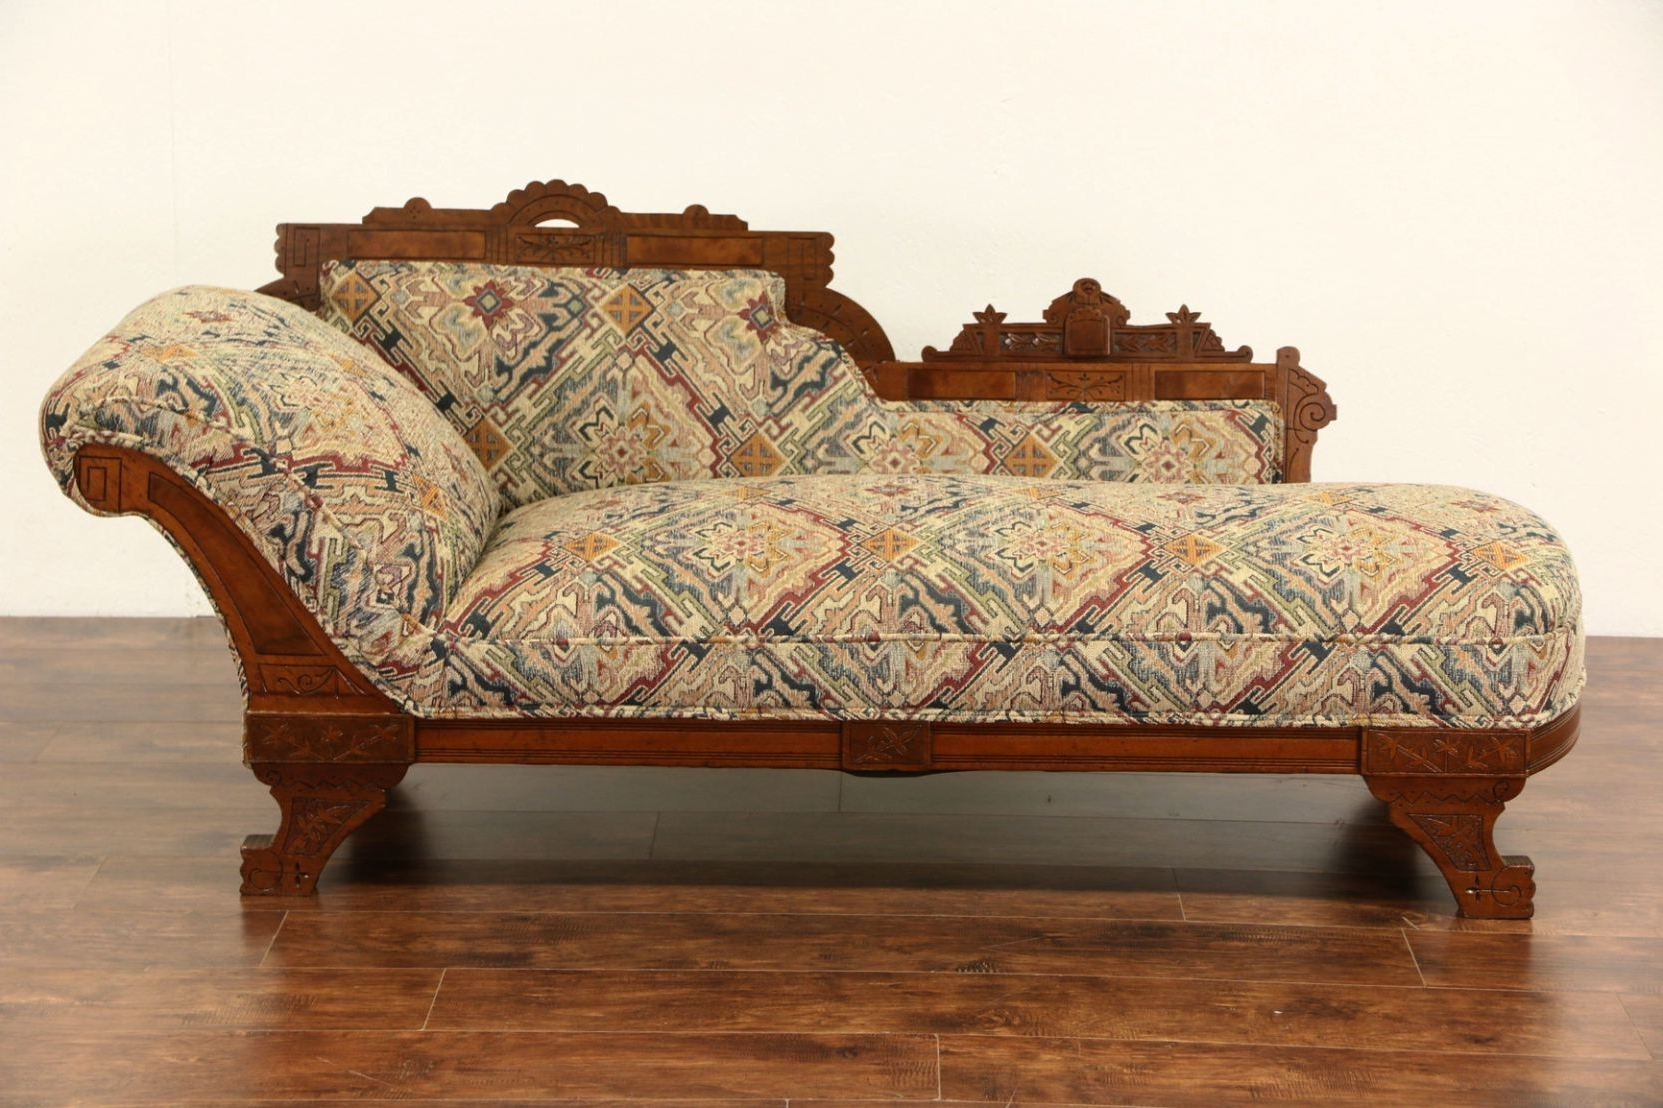 Victorian Eastlake 1880 Antique Chaise Lounge Or Fainting Couch Pertaining To Widely Used Victorian Chaise Lounges (View 15 of 15)